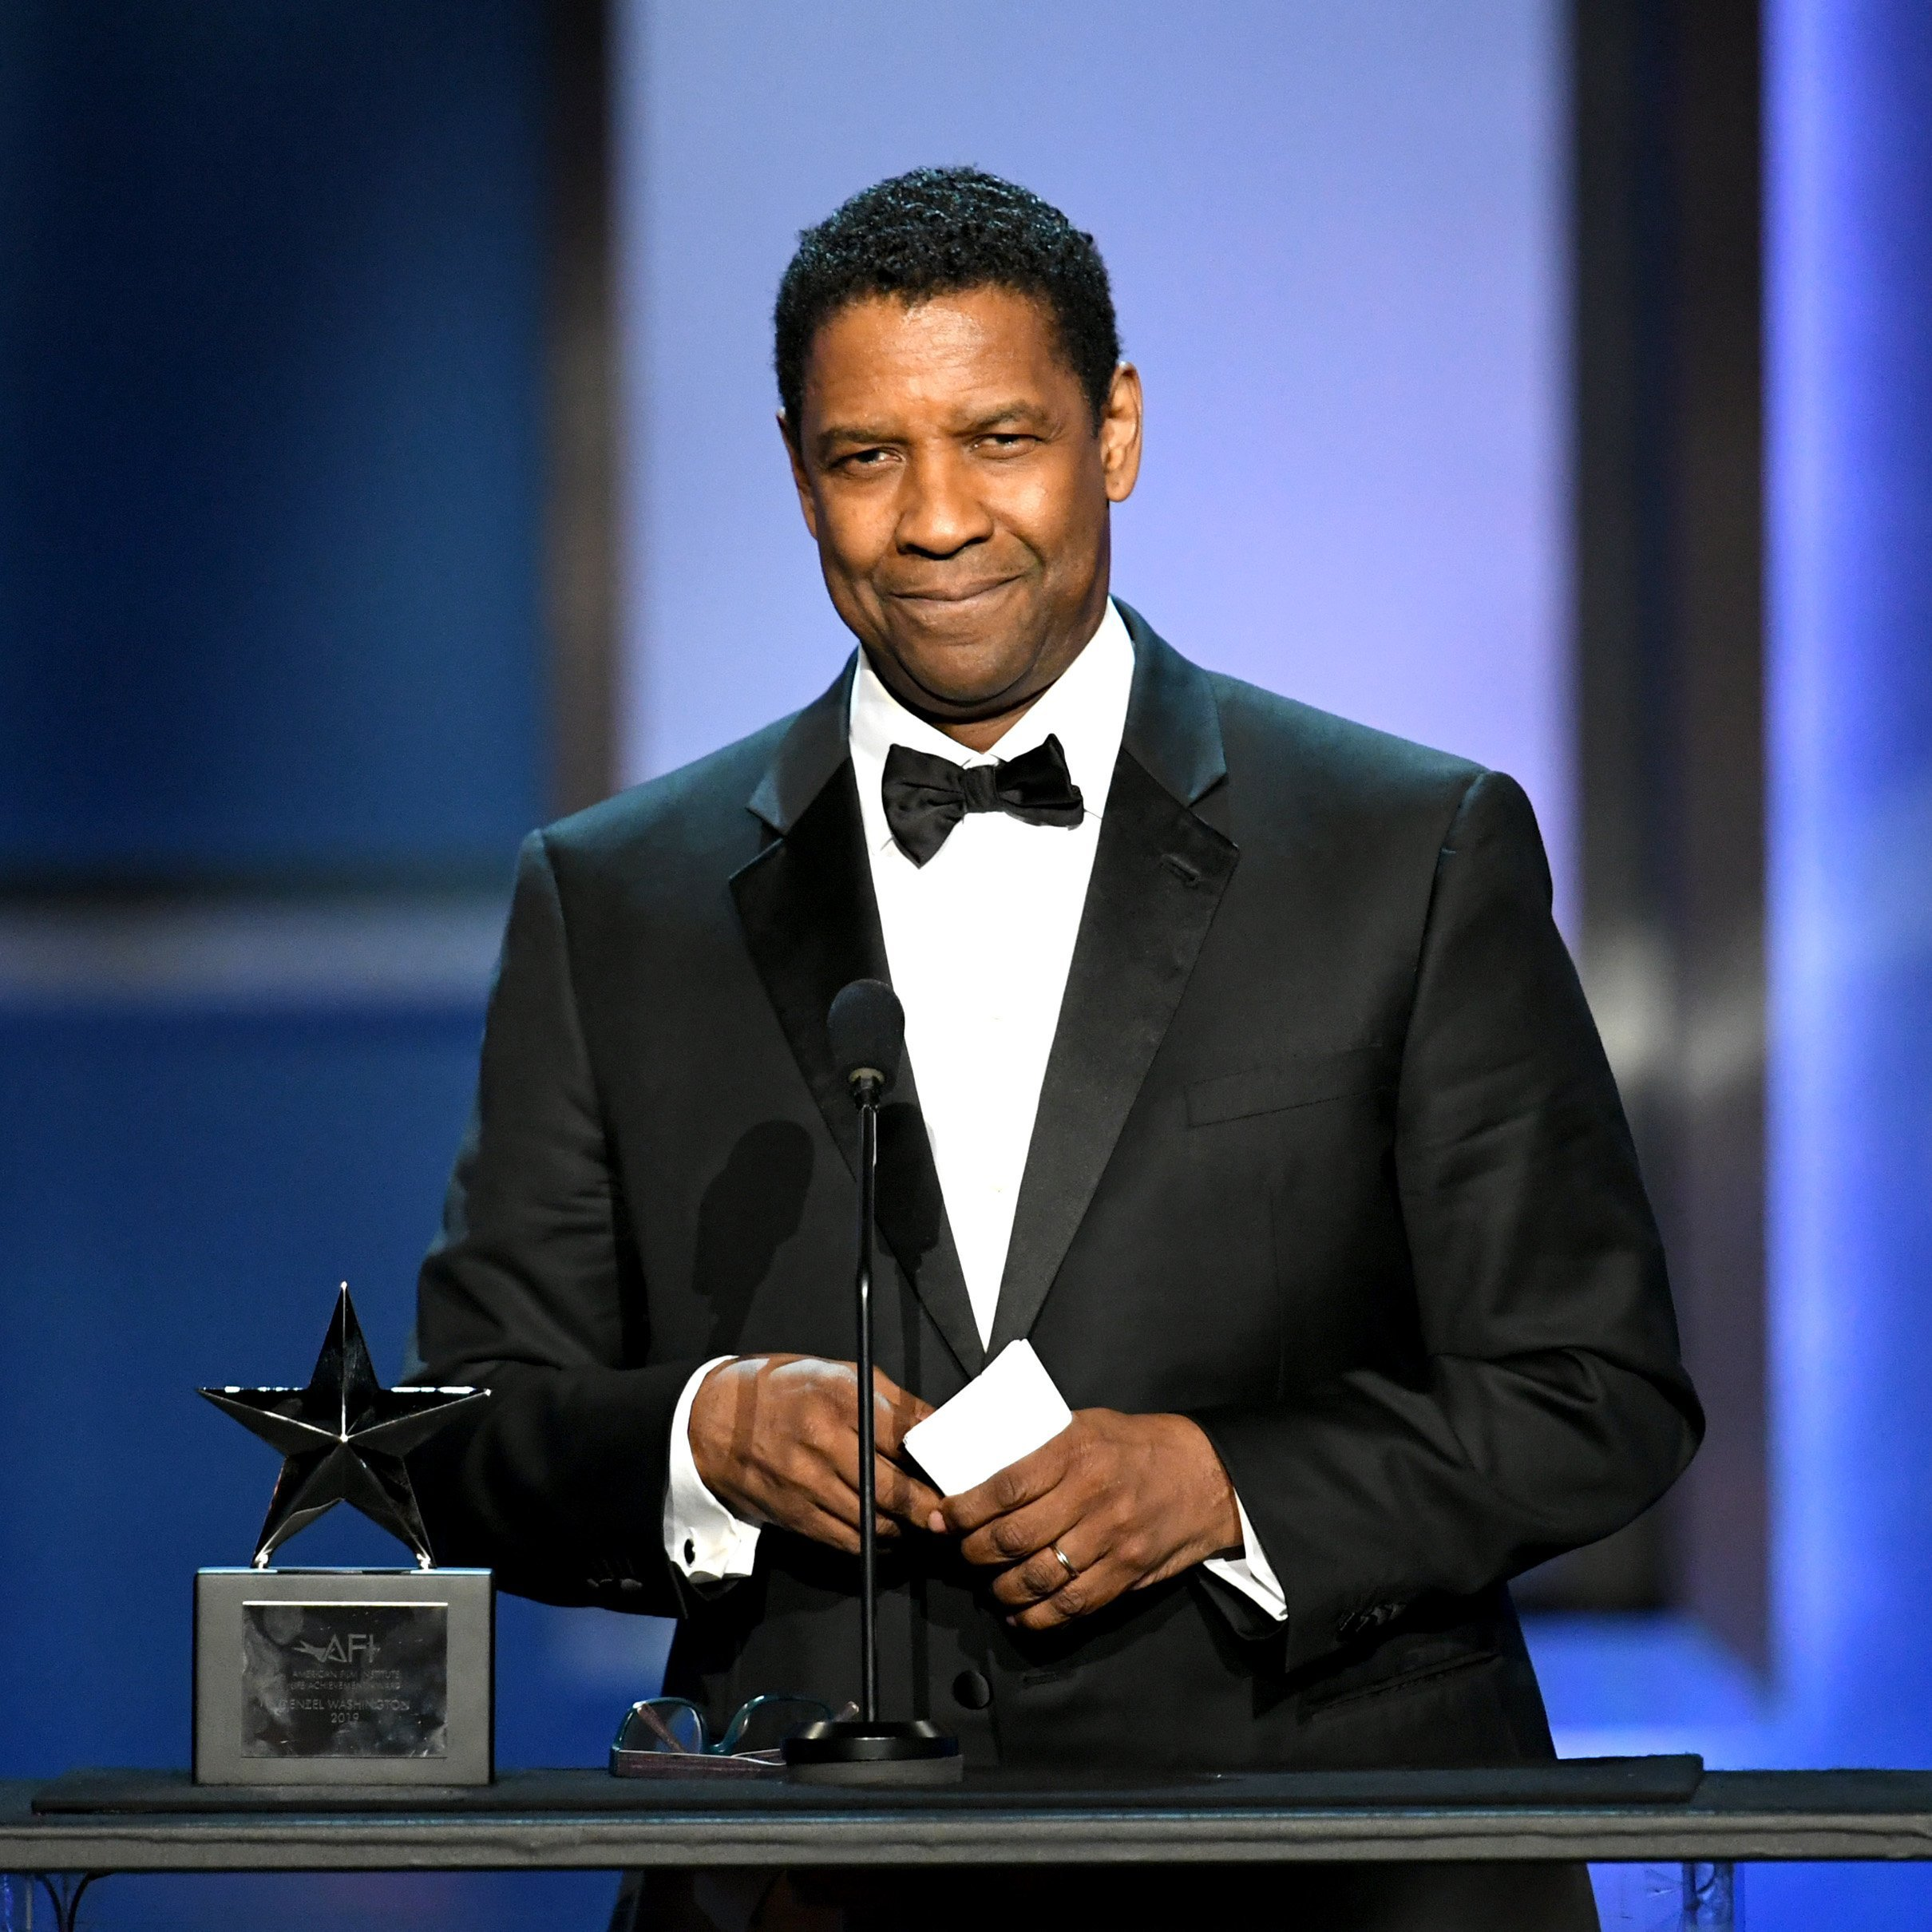 Honoree Denzel Washington speaks onstage during the 47th AFI Life Achievement Award on June 06, 2019. | Photo: Getty Images